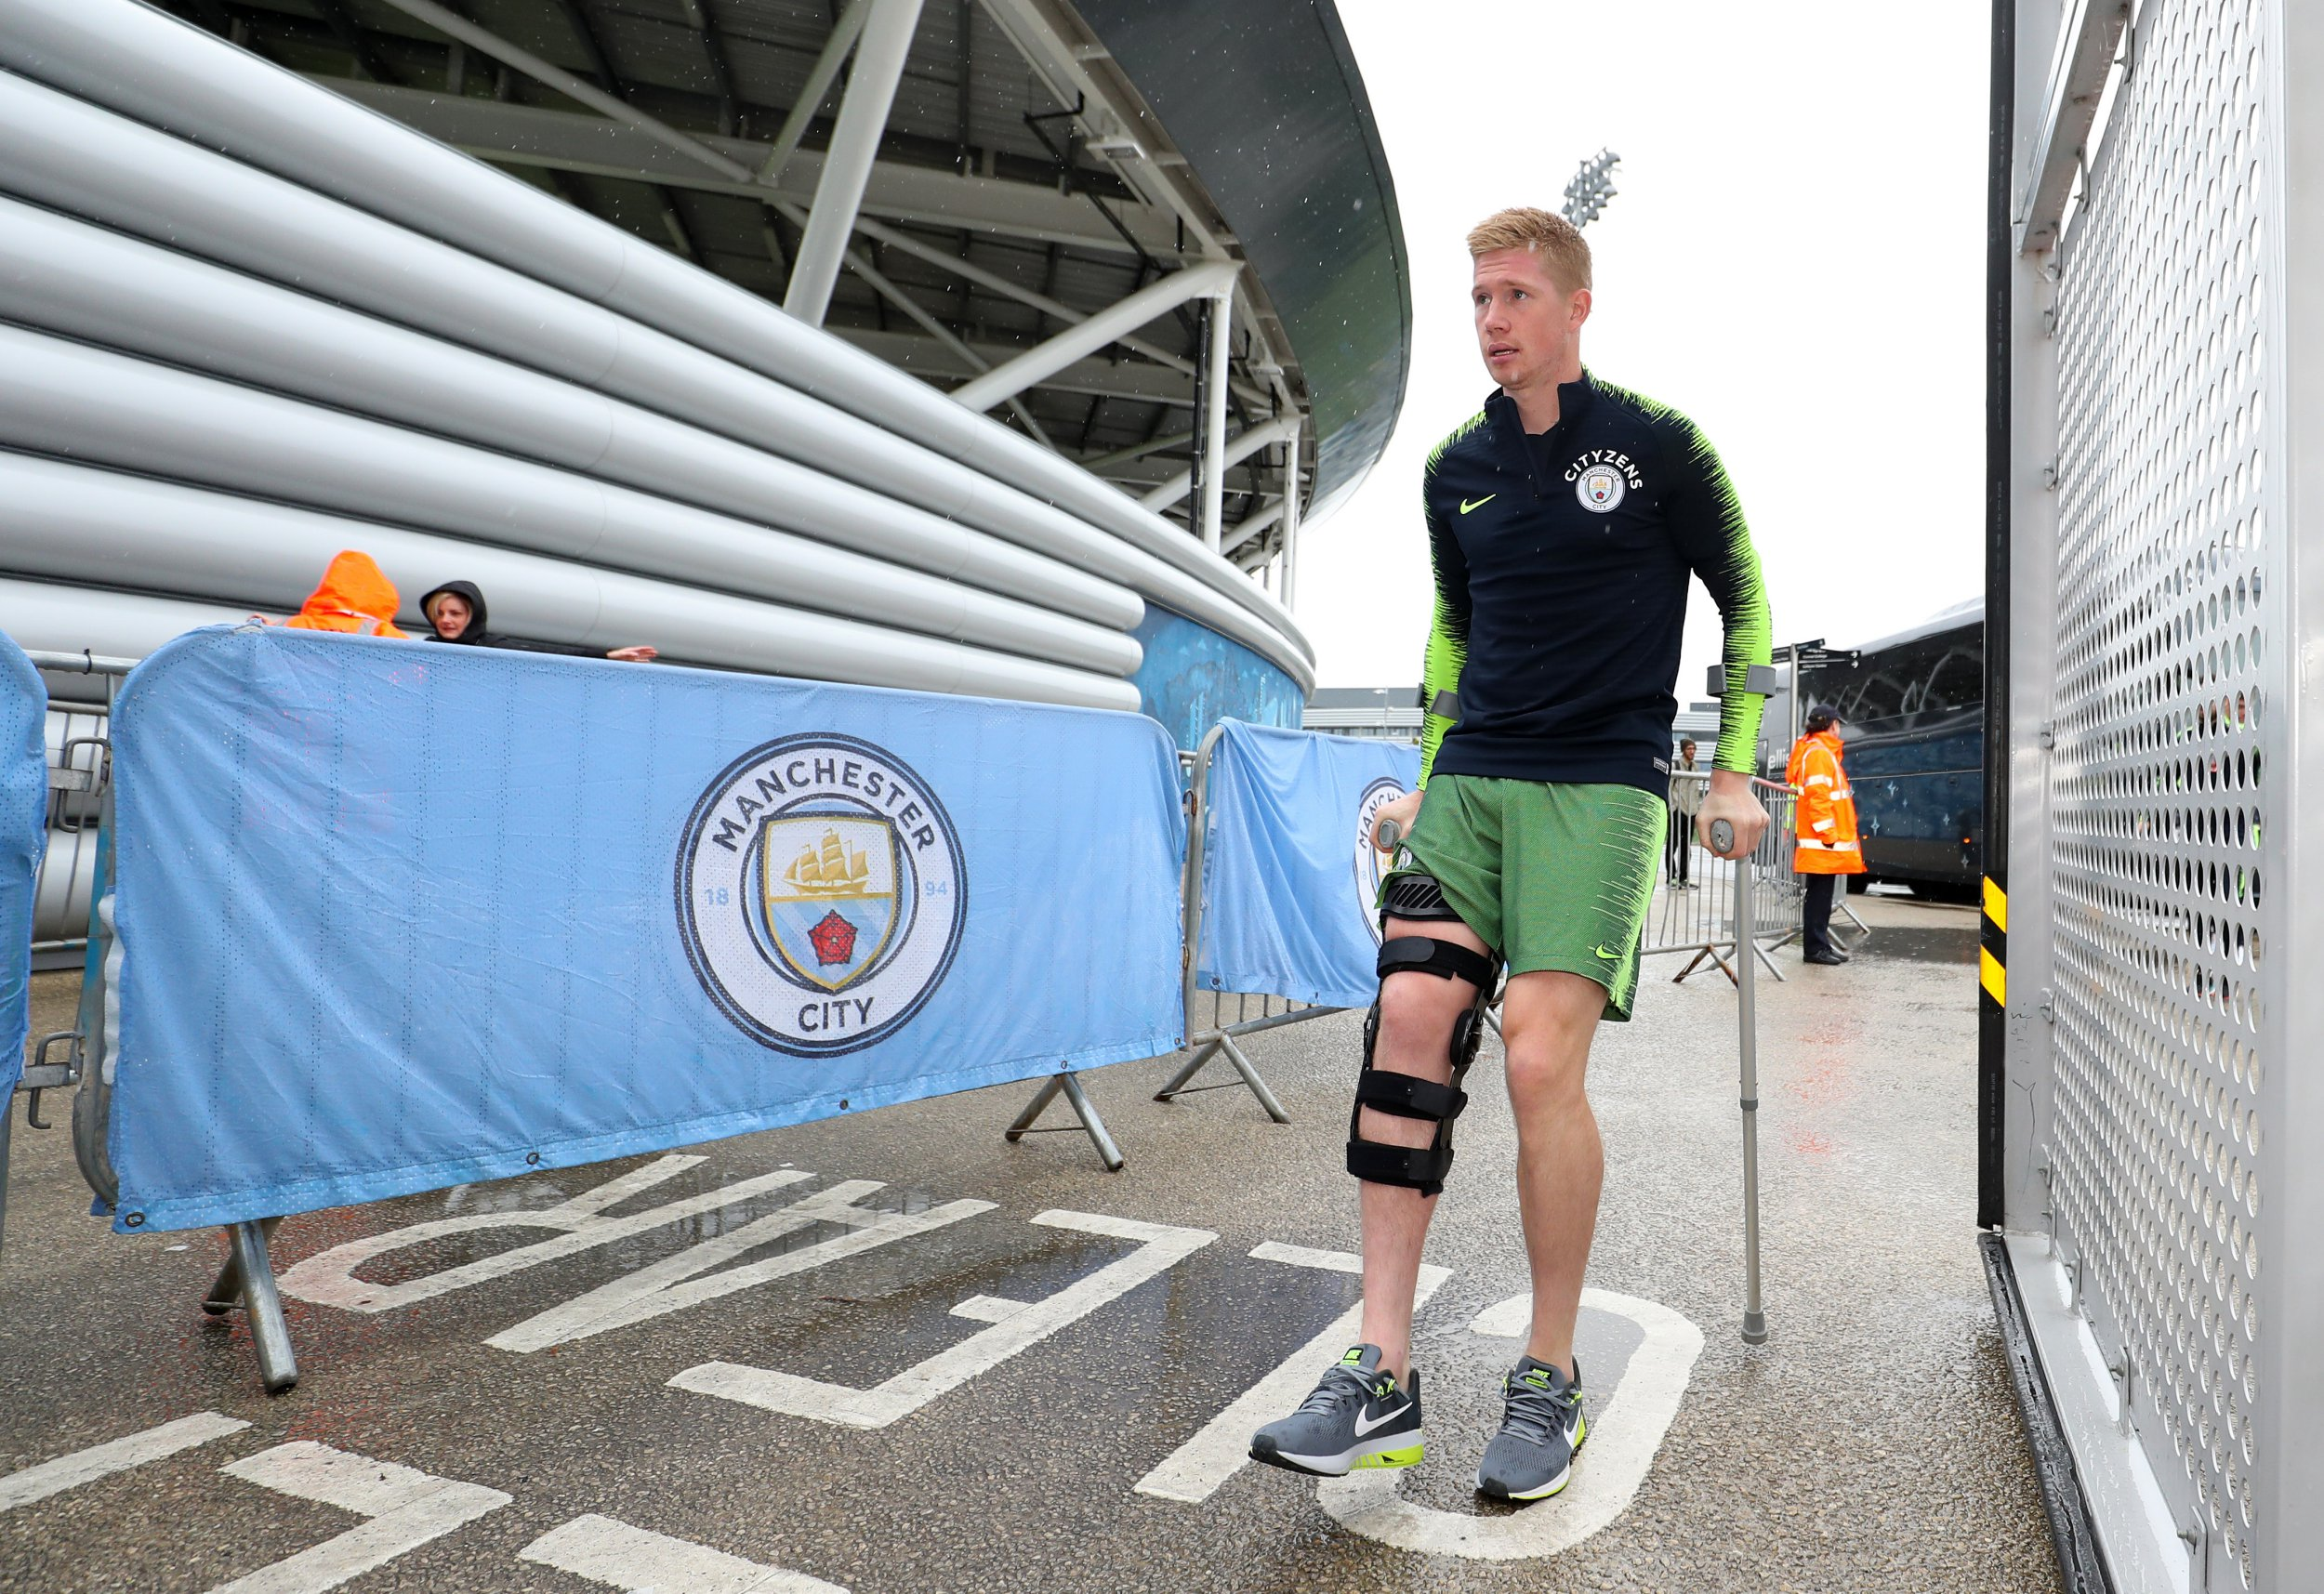 MANCHESTER, ENGLAND - AUGUST 26: Kevin De Bruyne of Manchester City during Manchester City Open Training Session at Manchester City Football Academy on August 26, 2018 in Manchester, England. (Photo by Manchester City FC/Man City via Getty Images)